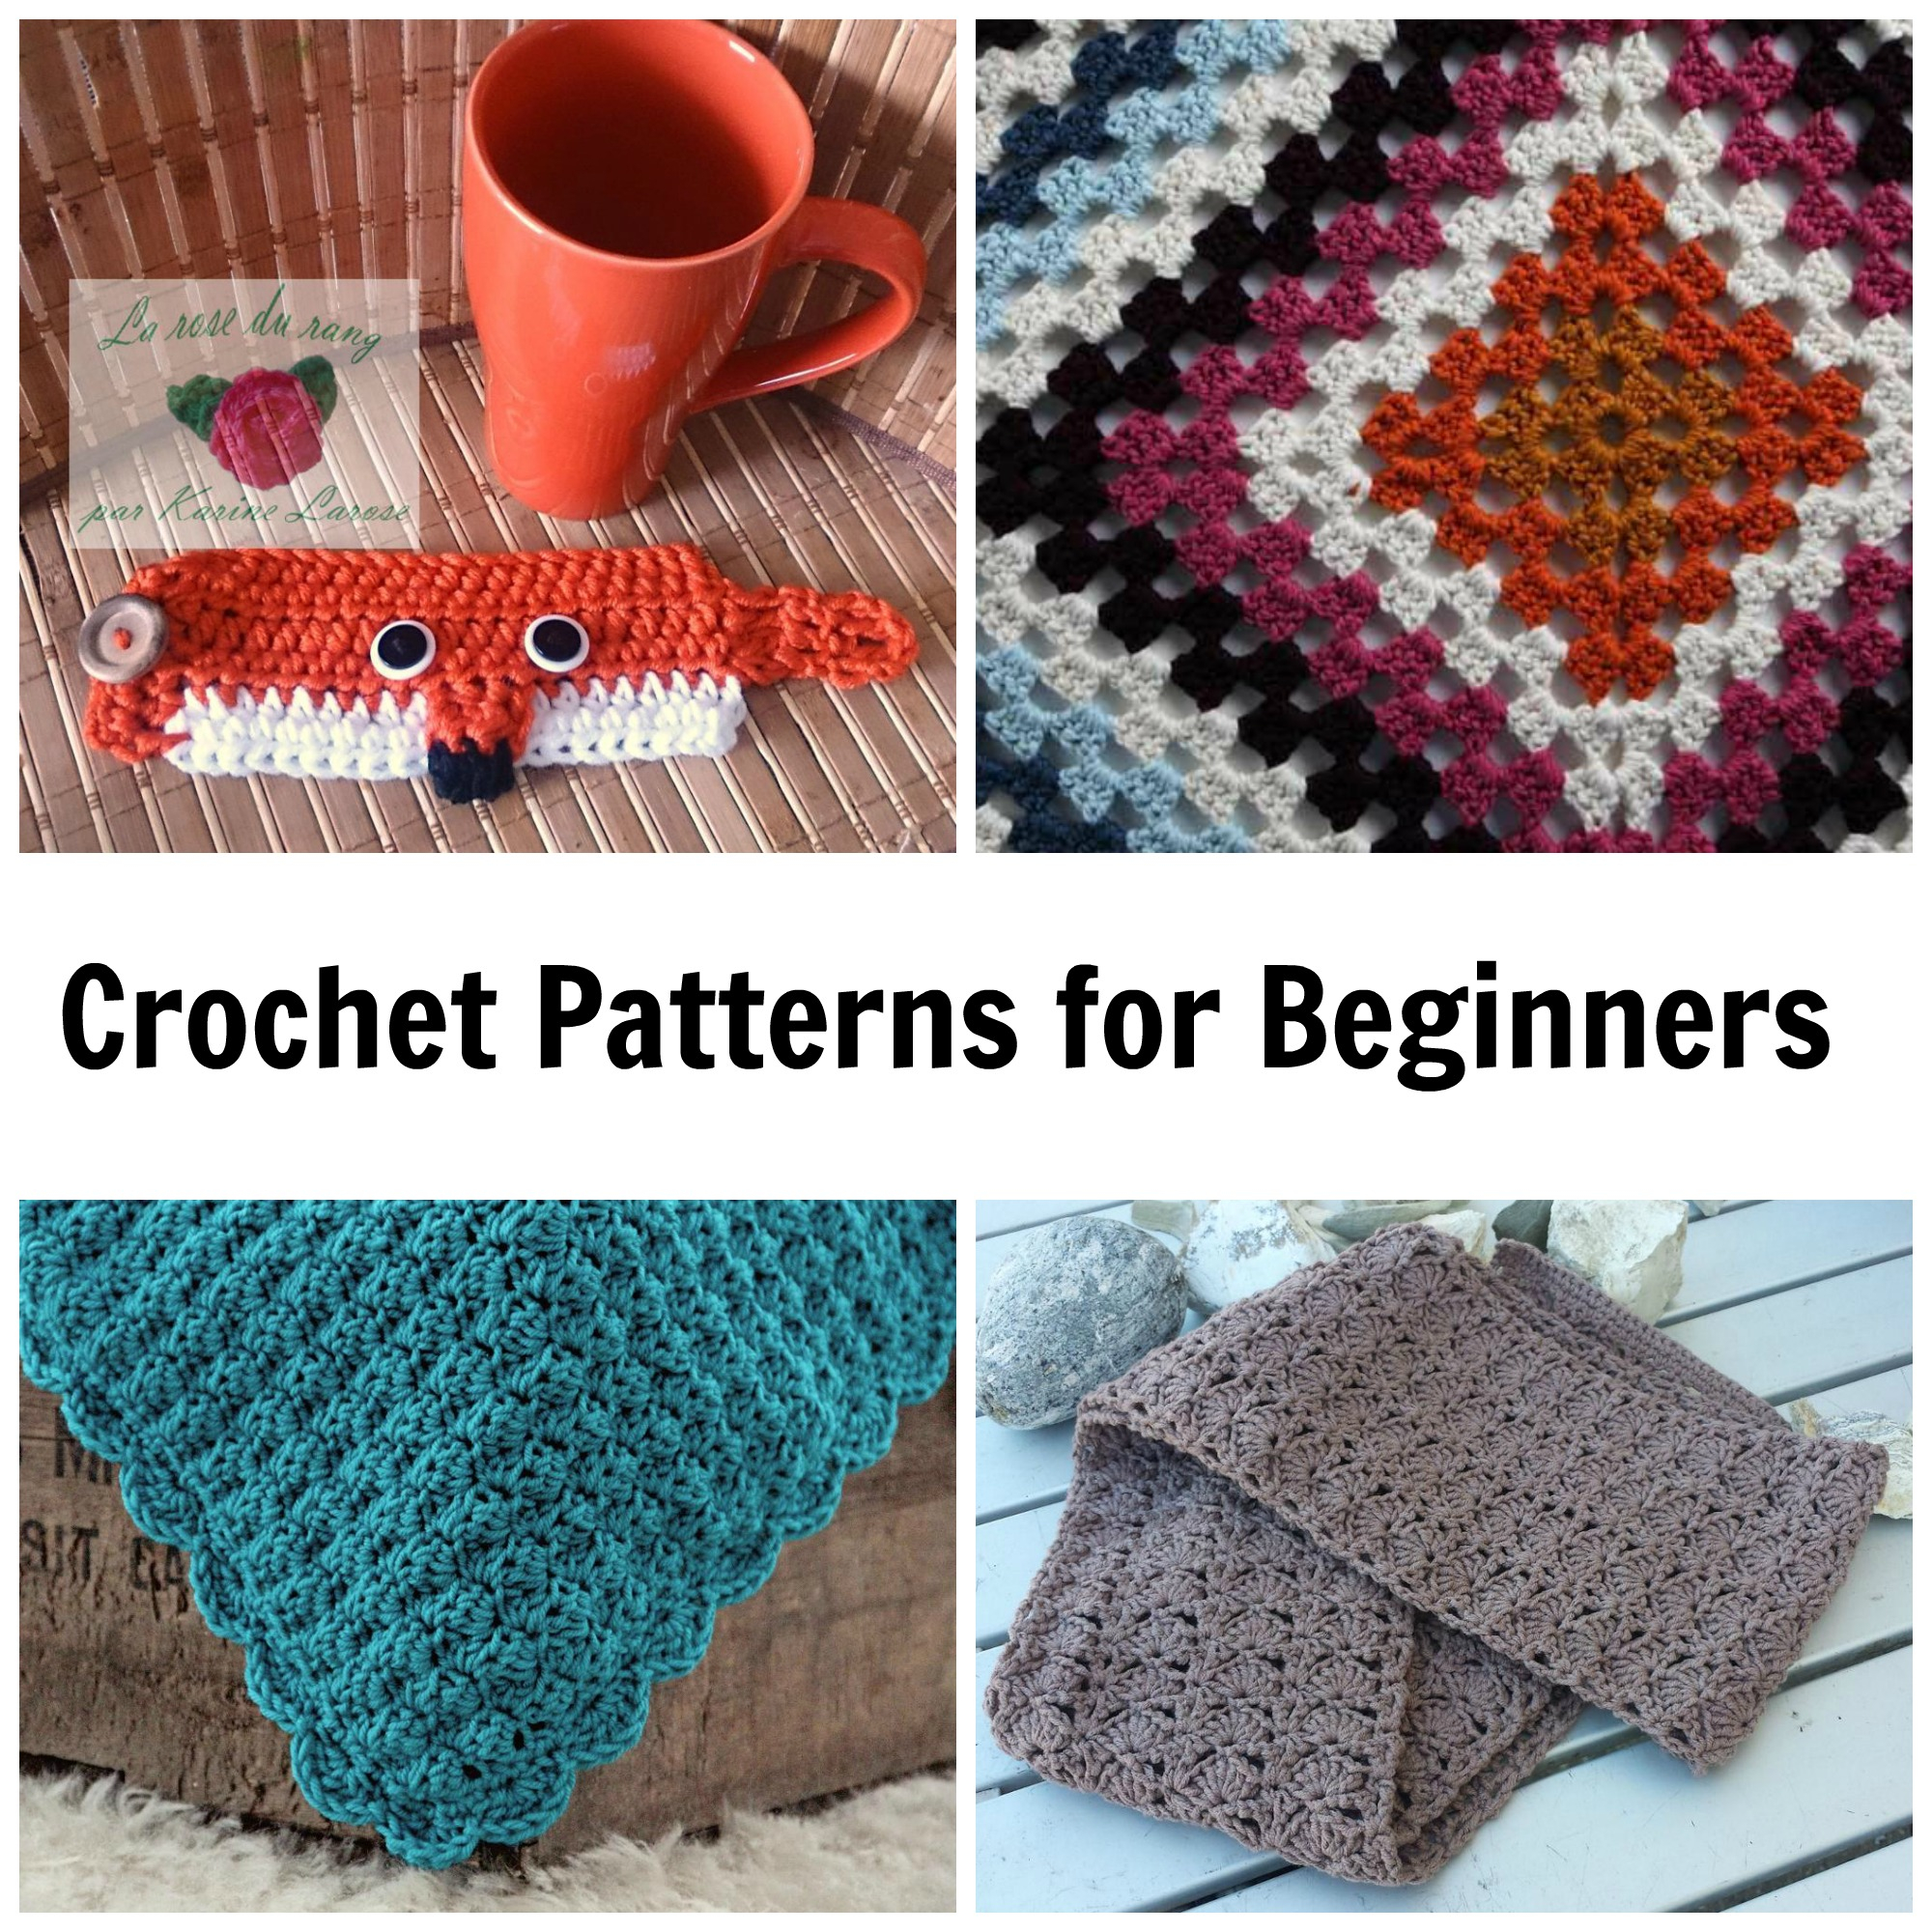 Begginer Crochet Projects Easy Patterns 7 Not Boring Crochet Patterns For Beginners